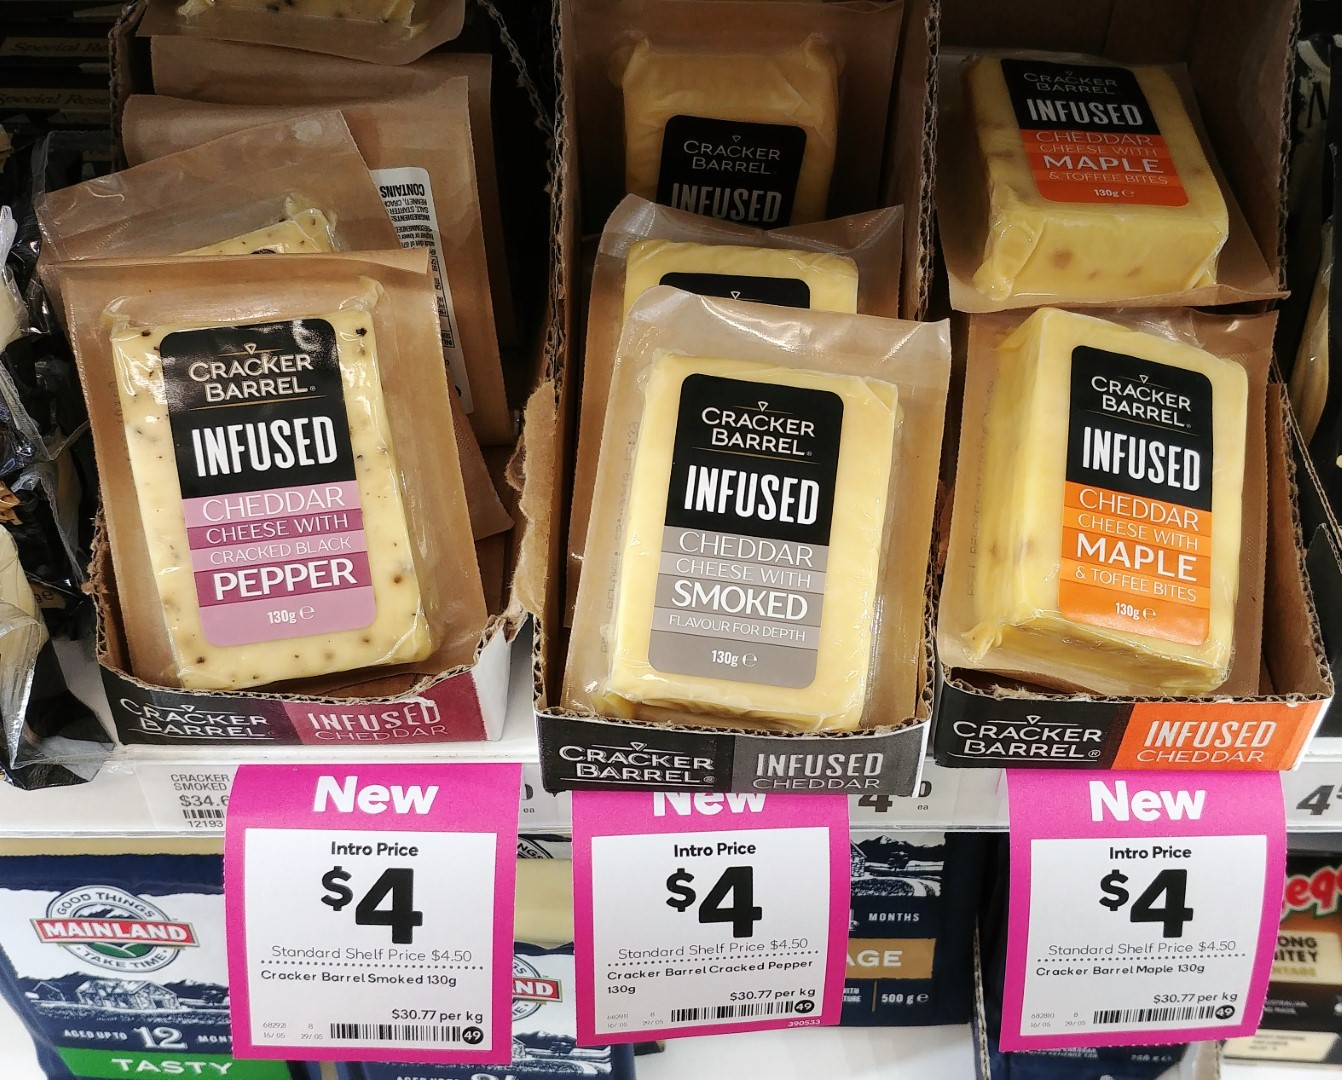 Woolworths New Products Australia